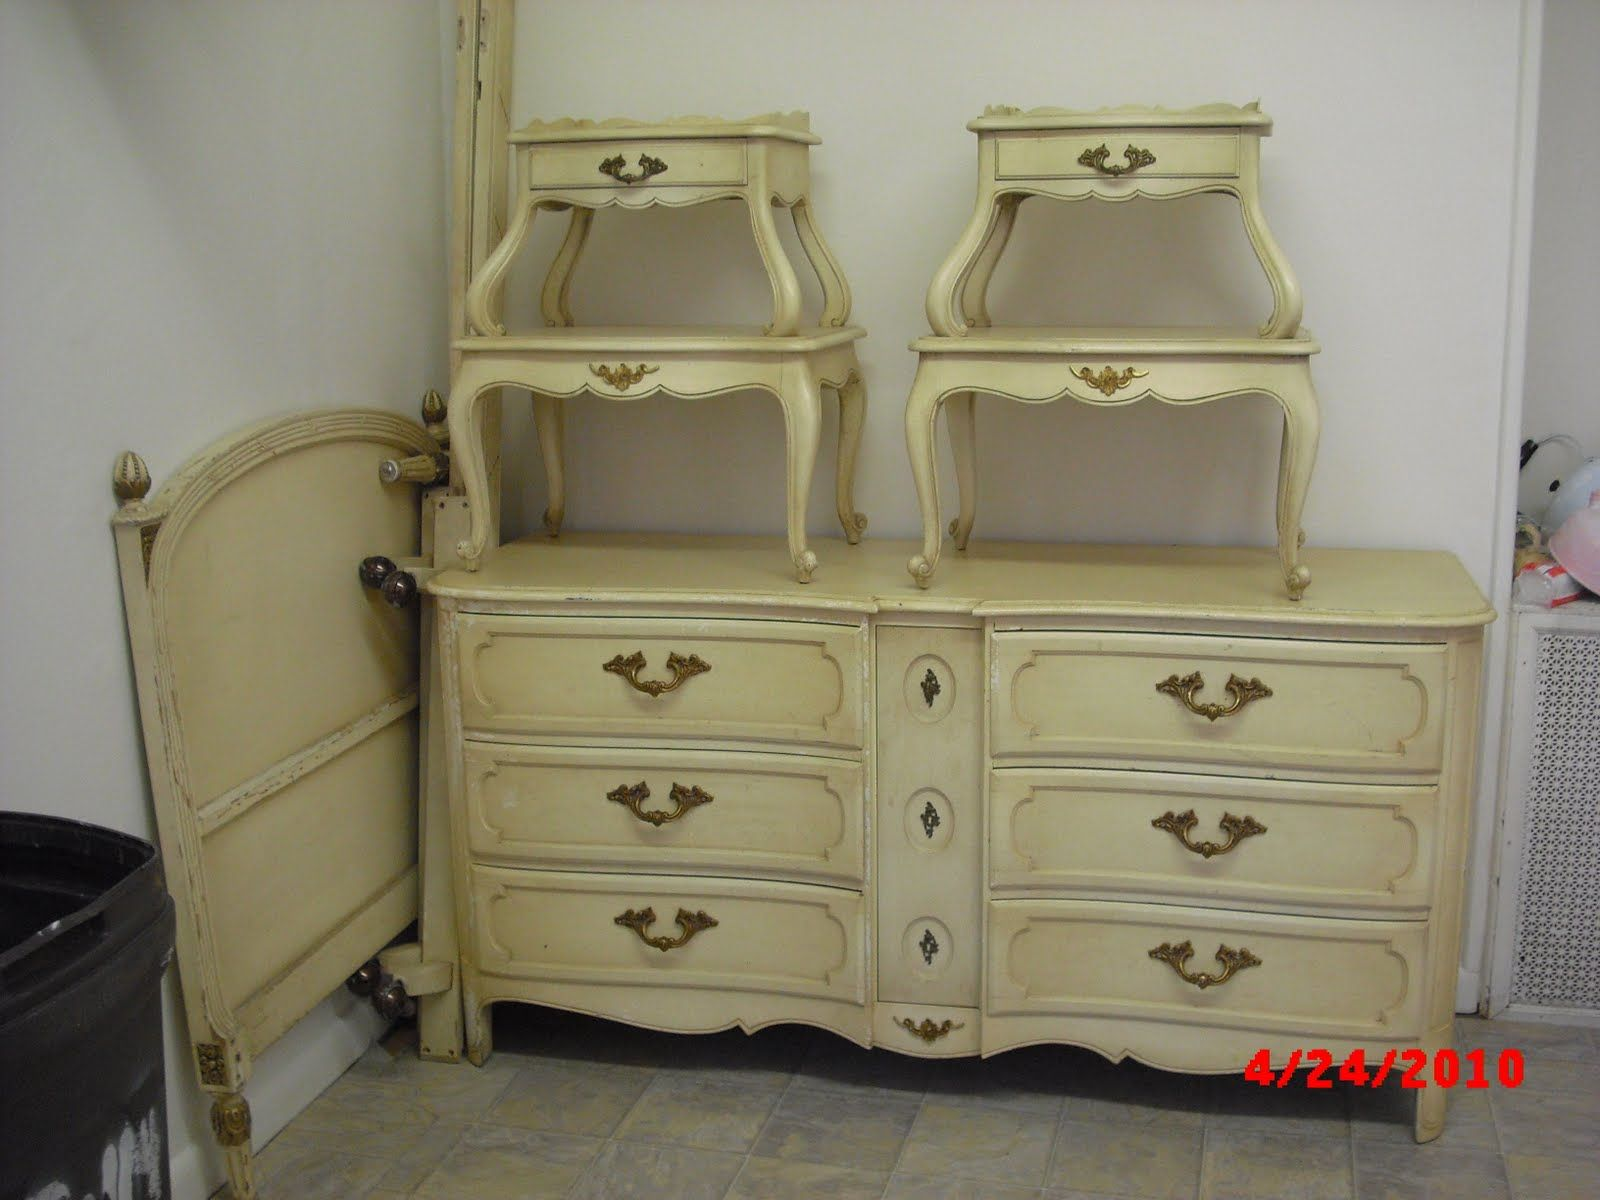 Superior Vintage French Provincial Bedroom FurnitureHandpainted Furniture Blog  Shabby Chic Vintage Painted Furniture ZMByNTgL